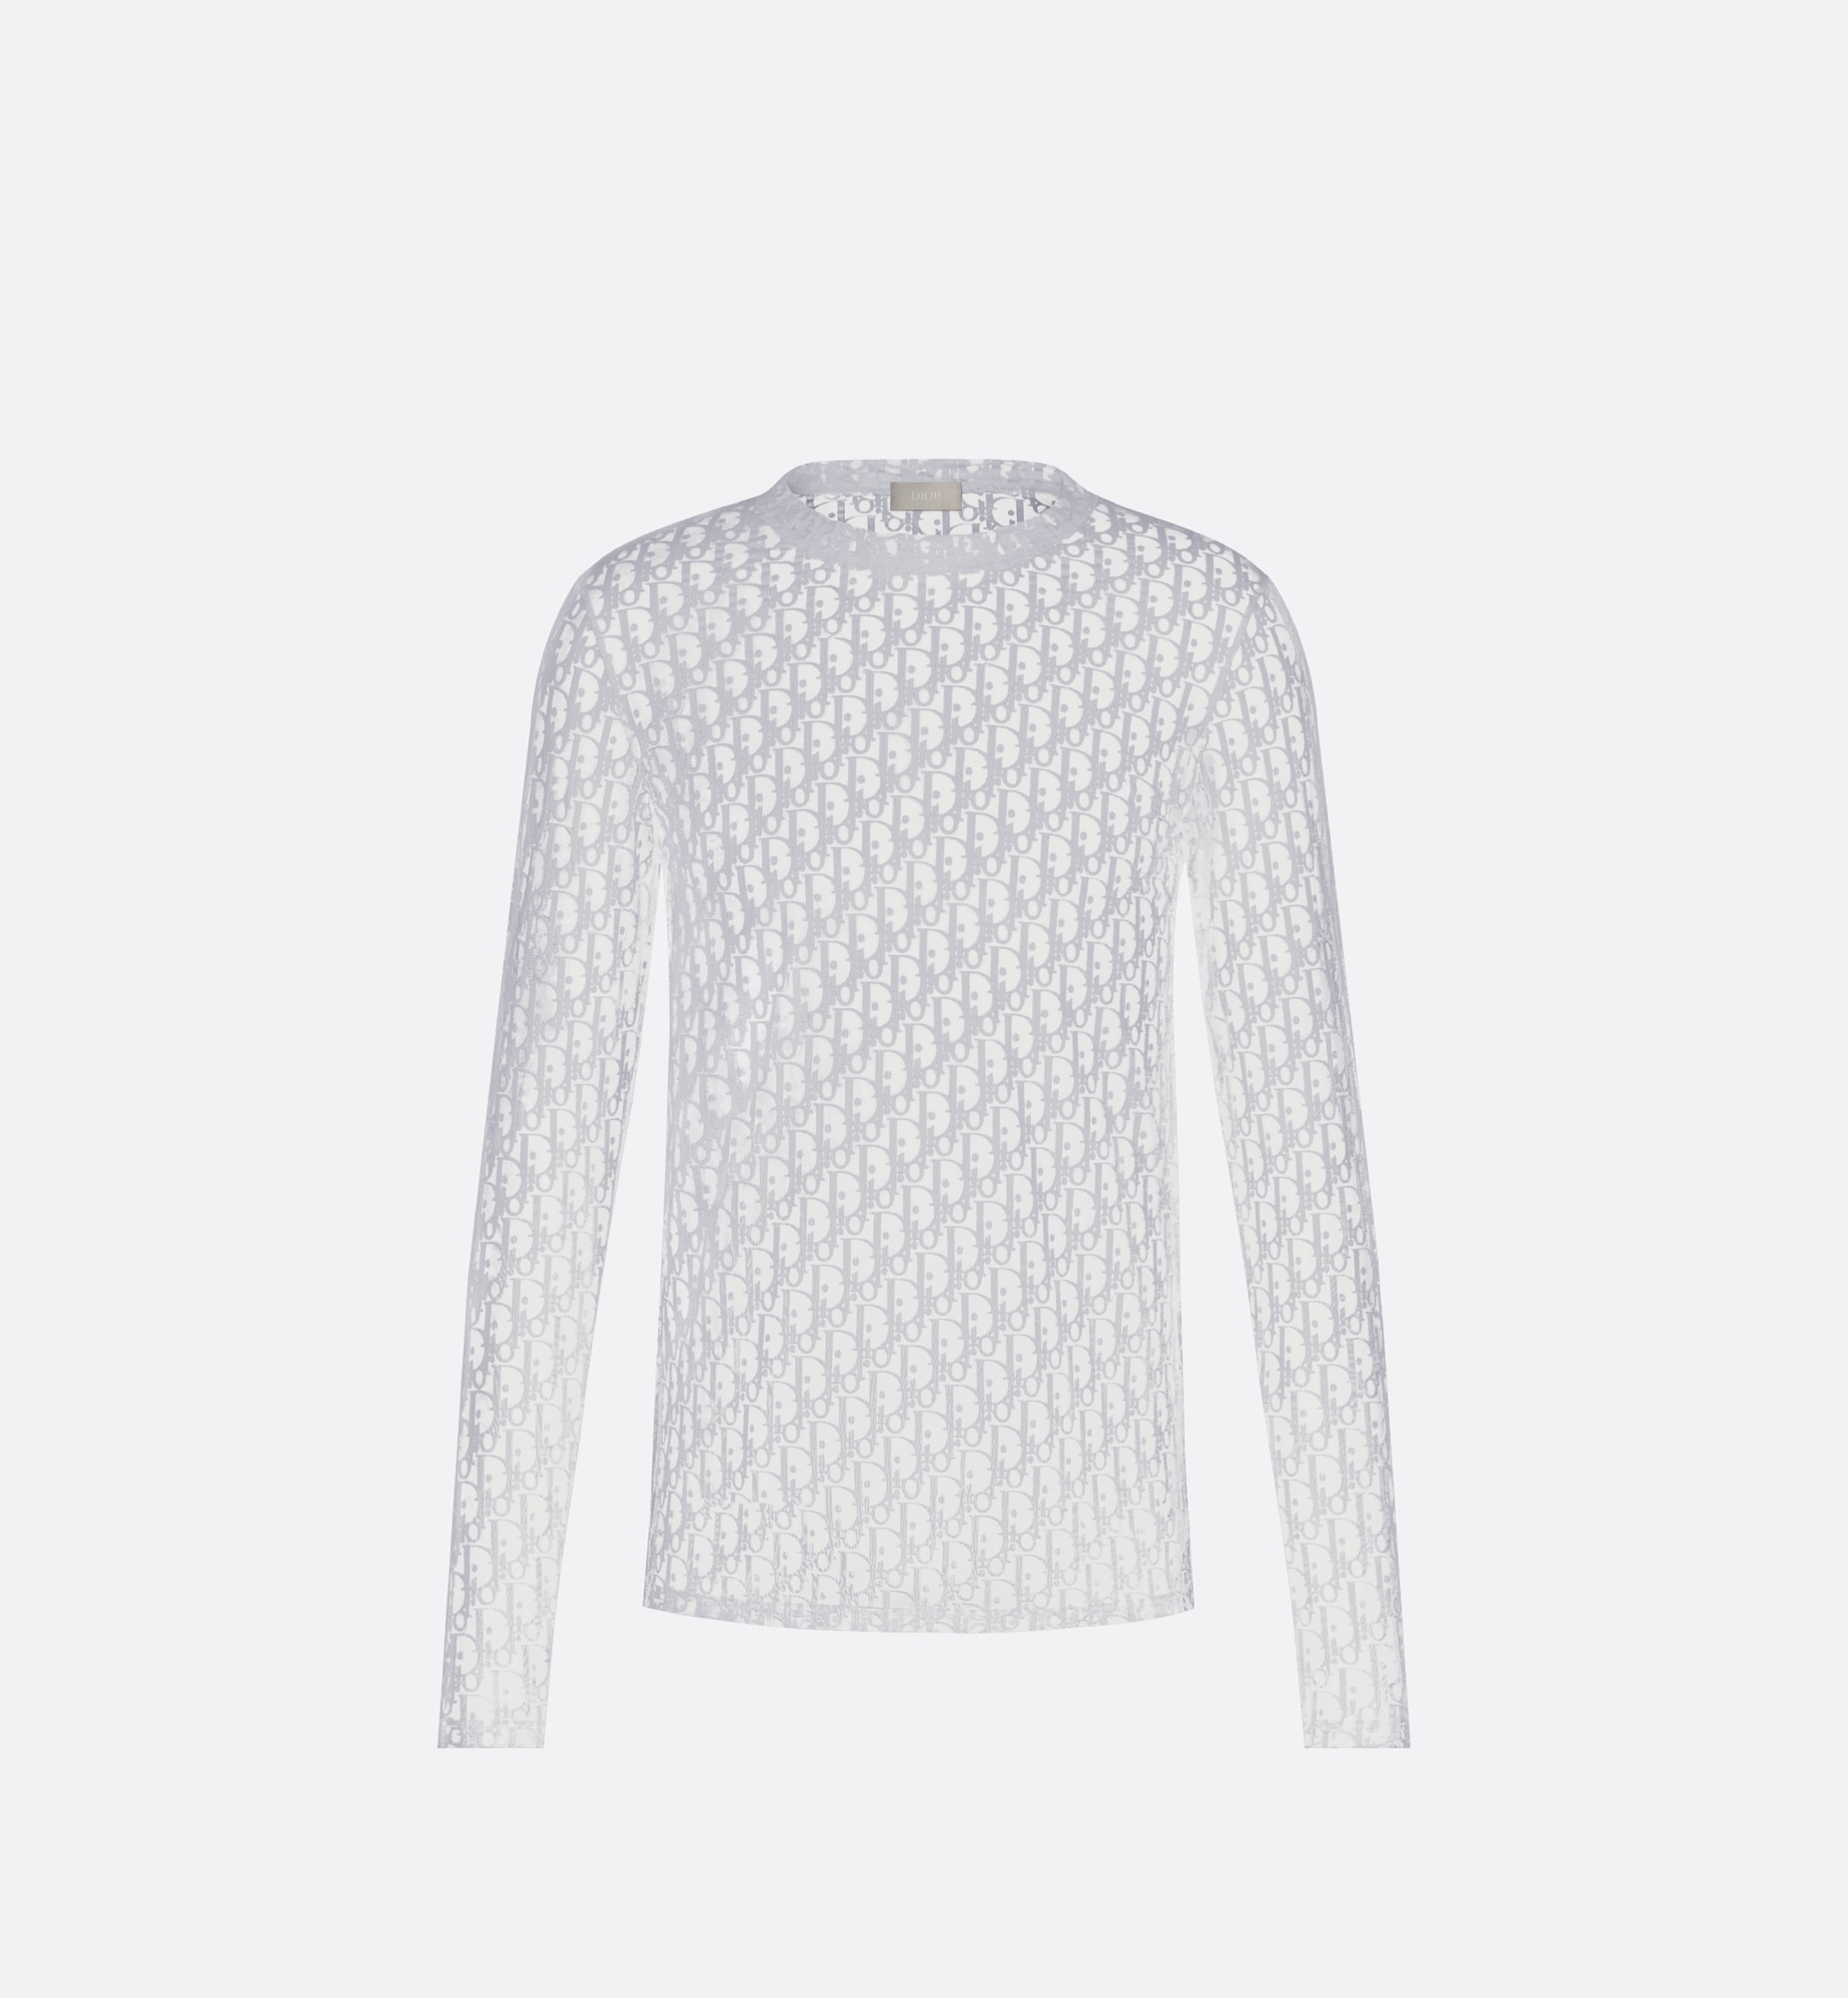 long-sleeved dior oblique t-shirt | Dior Front view